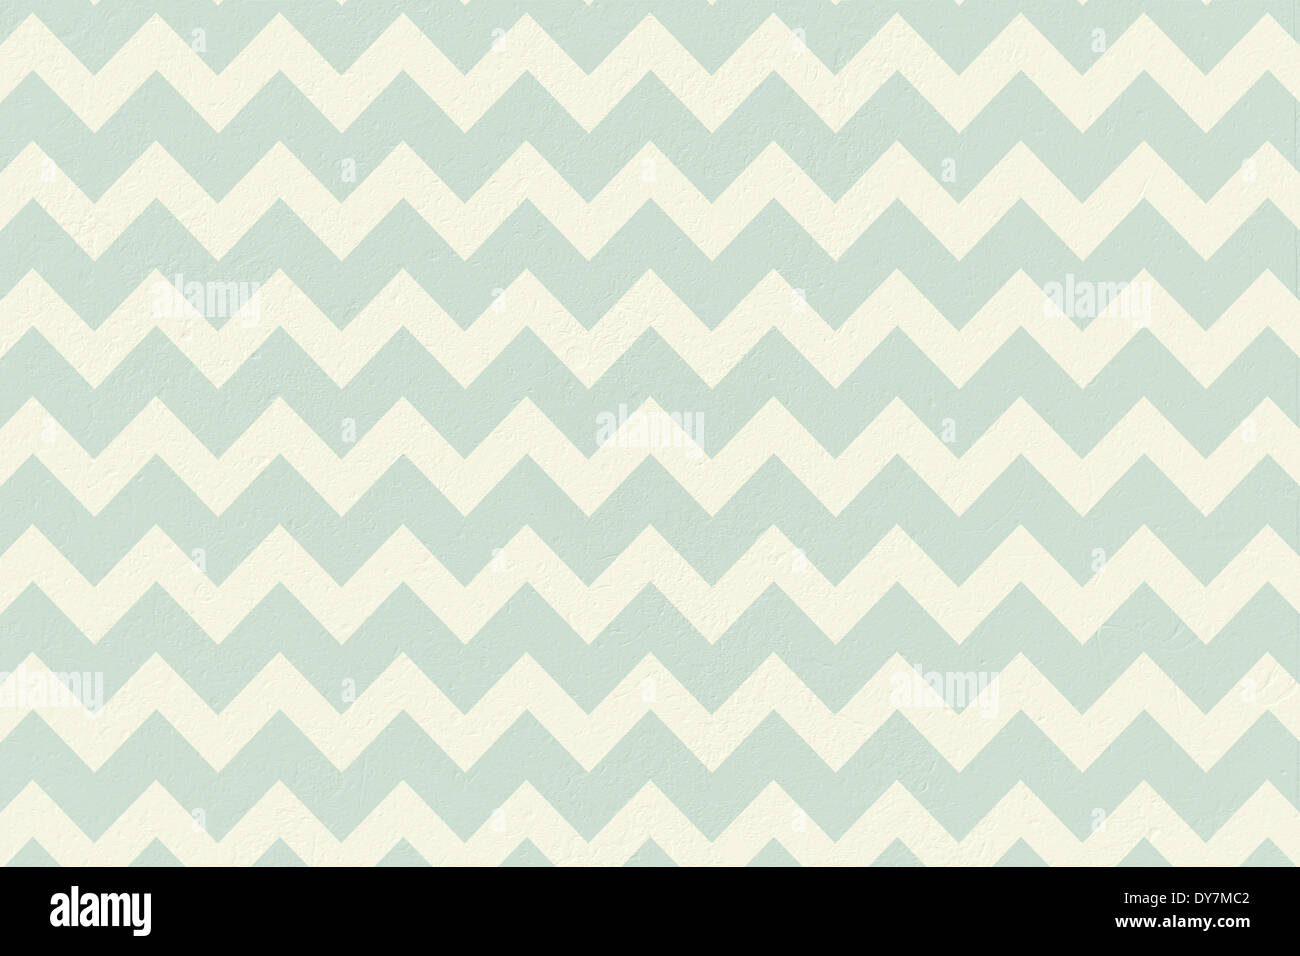 Blue and cream patterned wallpaper - Stock Image